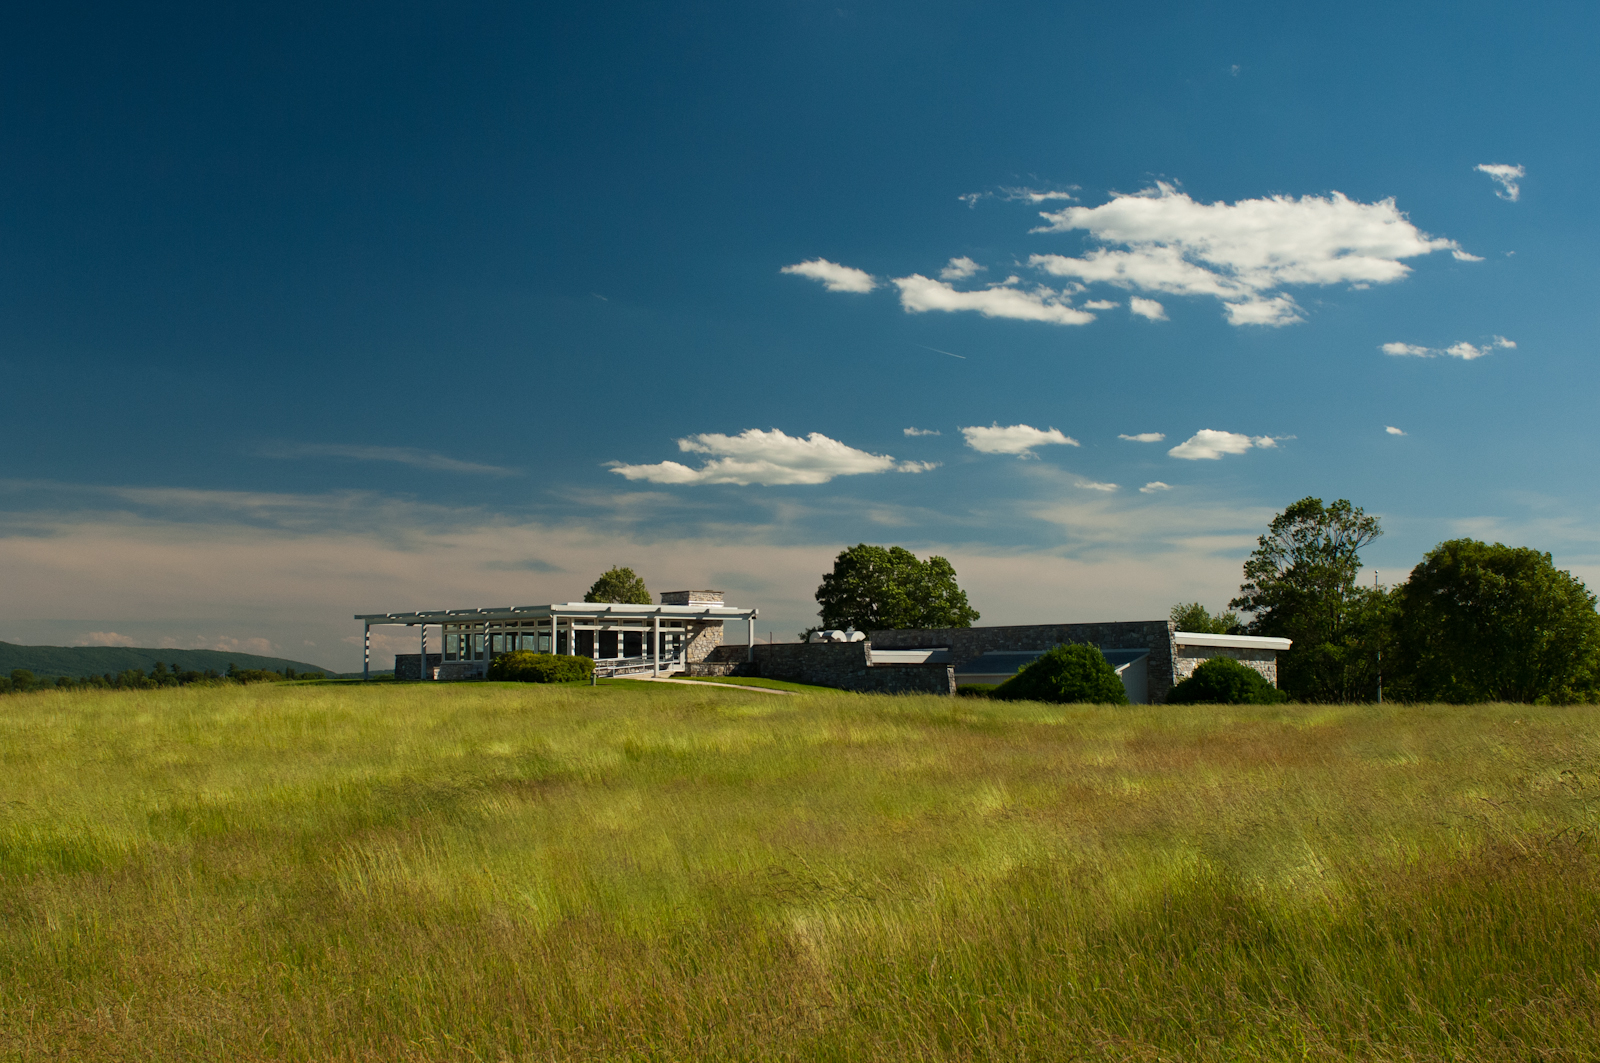 Visitor's Center, Antietam National Battlefield Park, Sharpsburg